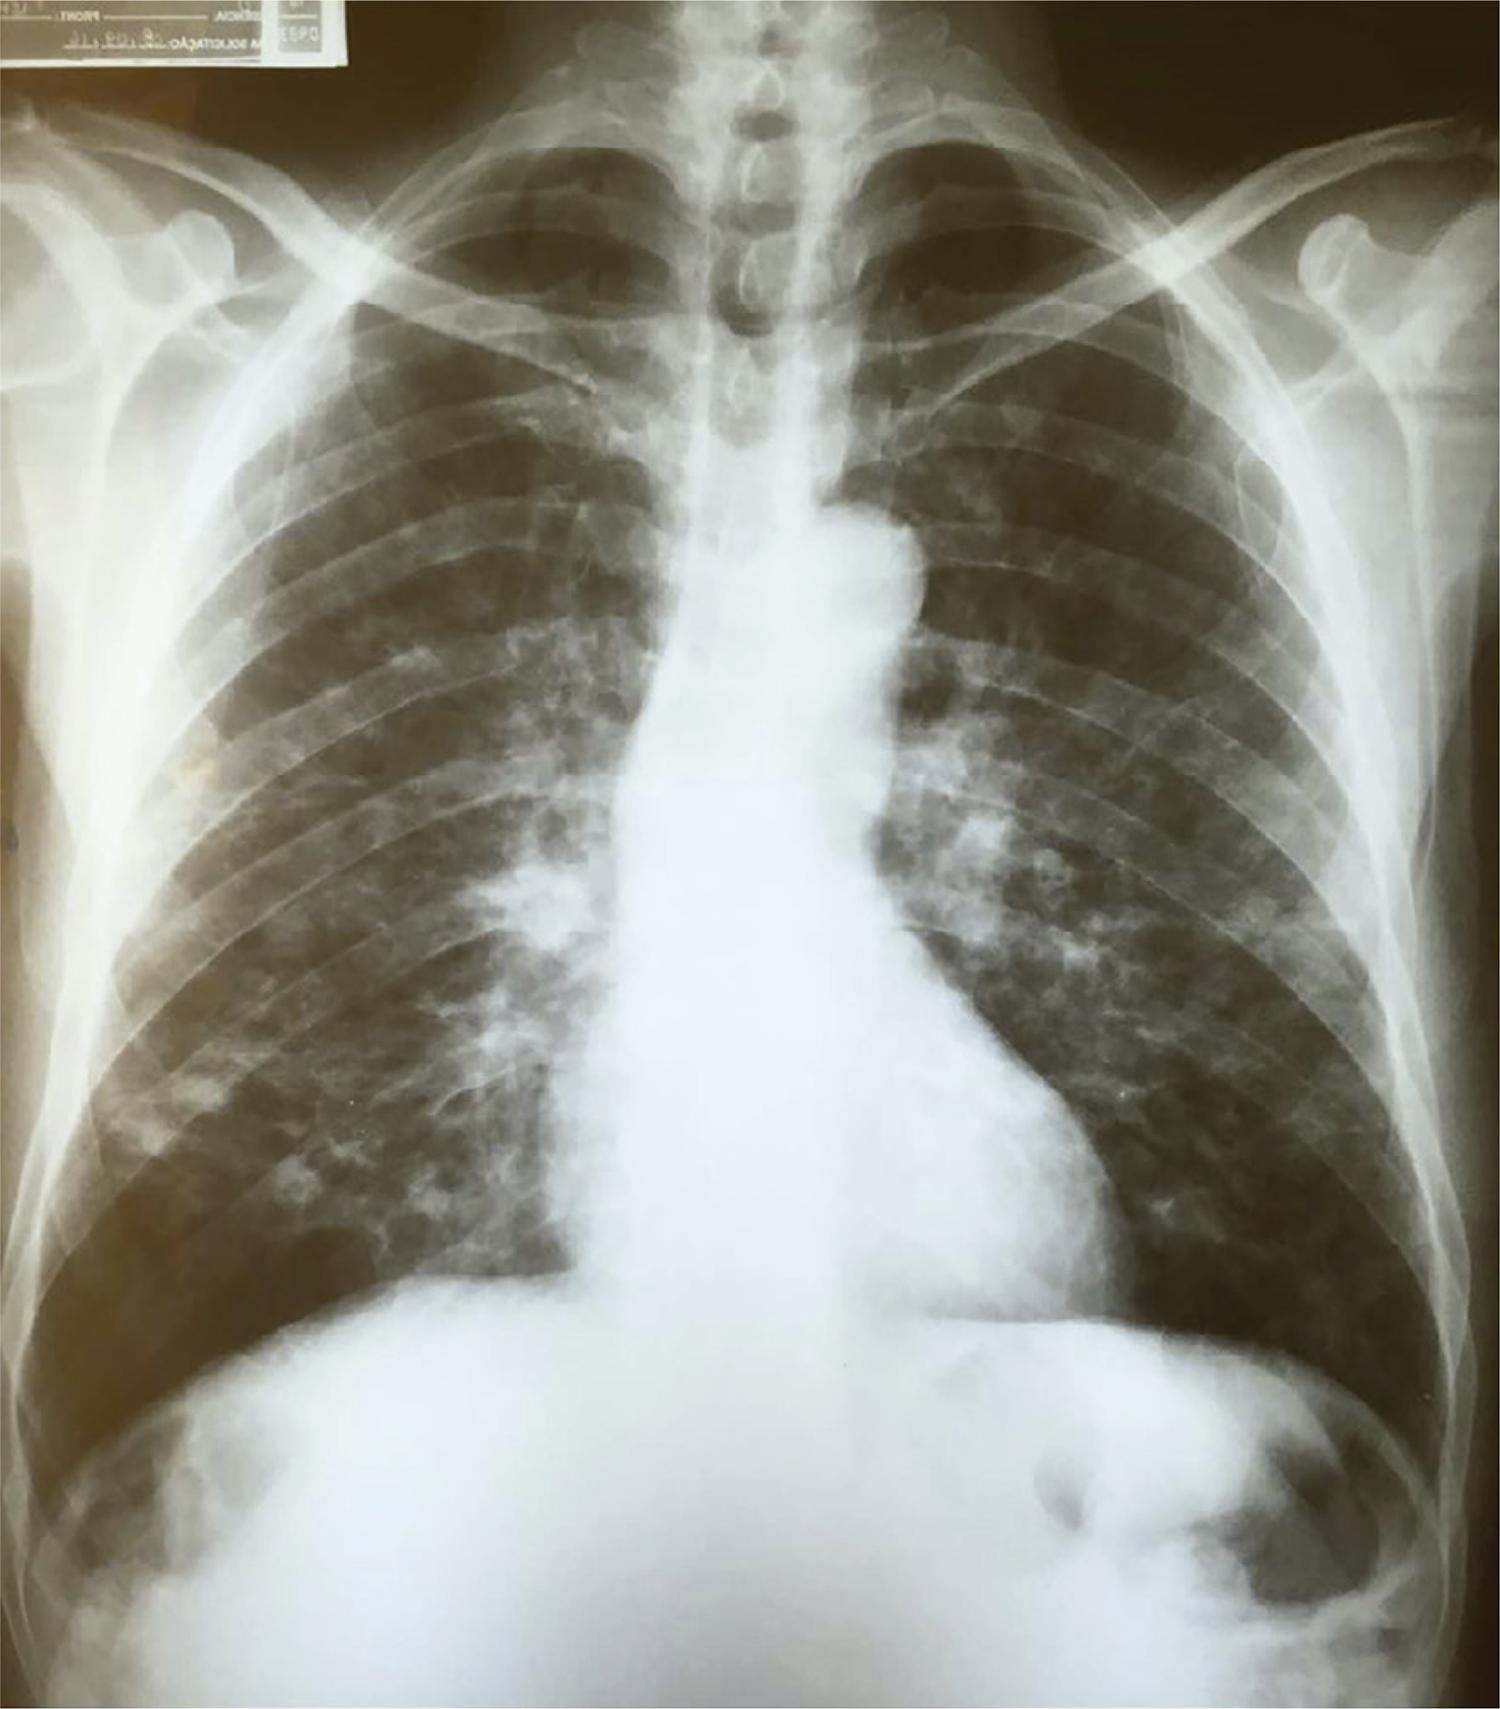 Chest x-ray showing nodules with predominantly central distribution affecting both lungs, some with signs of cavitation and bilateral perihilar reticular infiltrate.